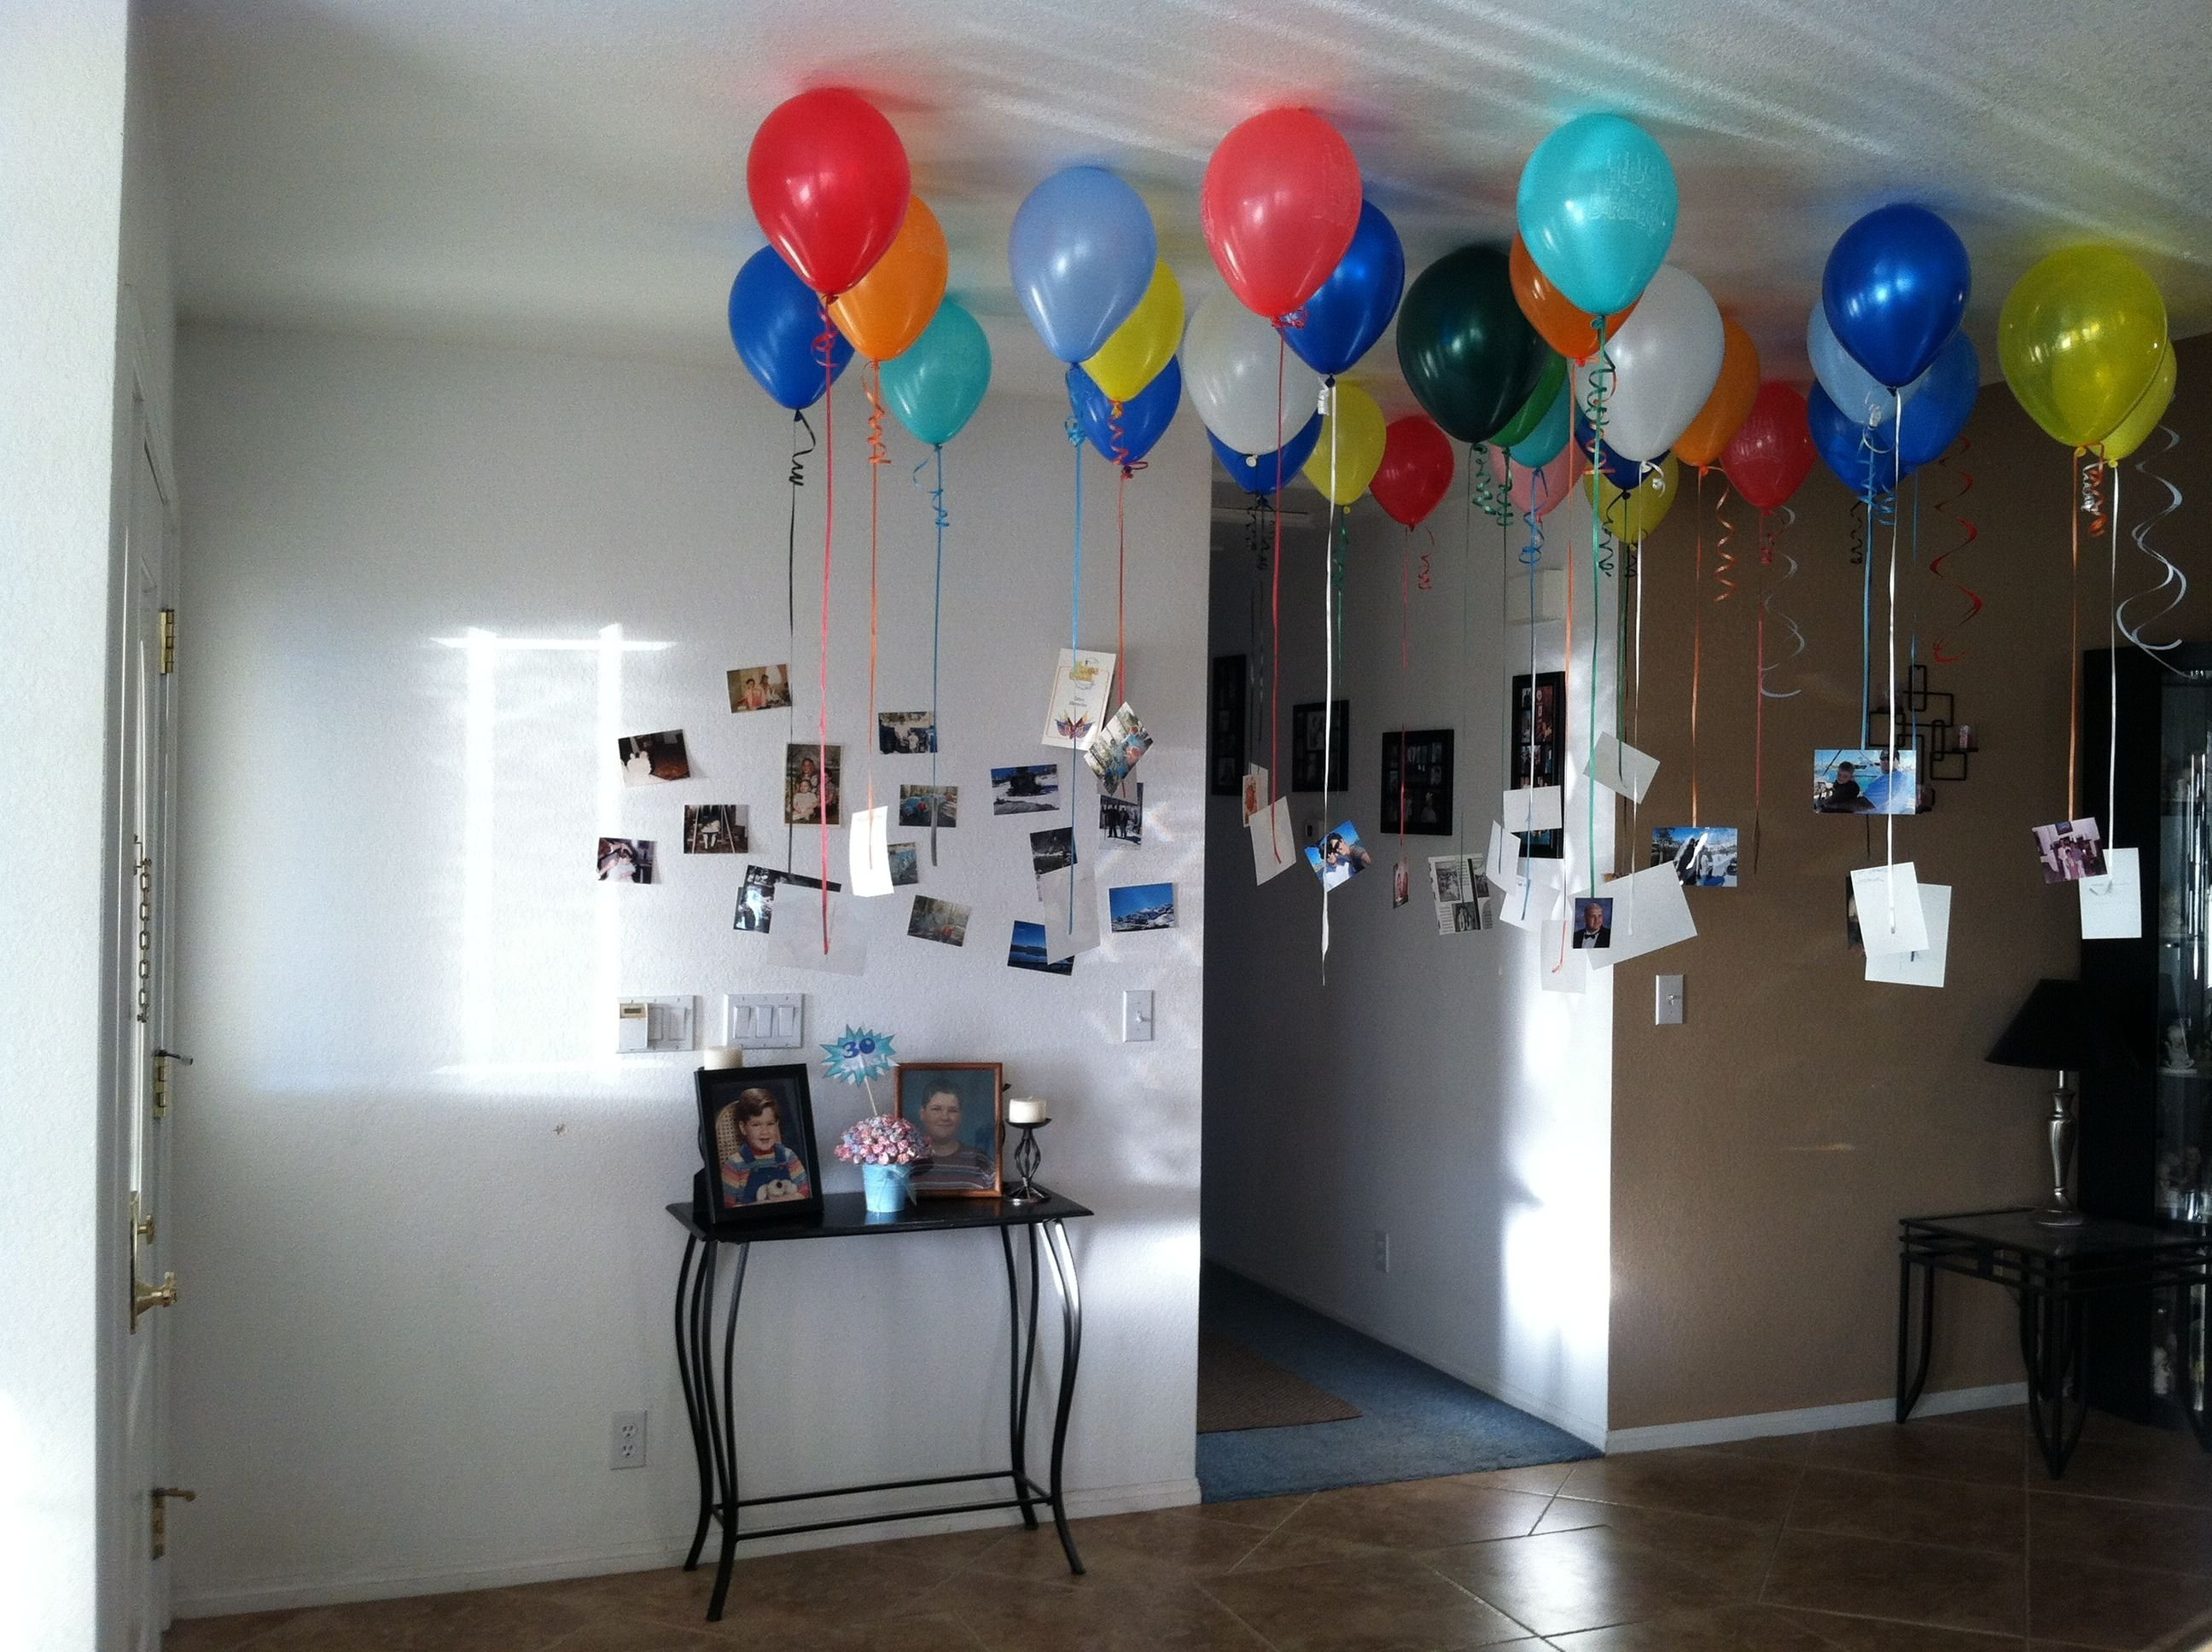 10 Fantastic 30Th Birthday Celebration Ideas For Her did this in my entry way for husbands 30th birthday 30 balloons 6